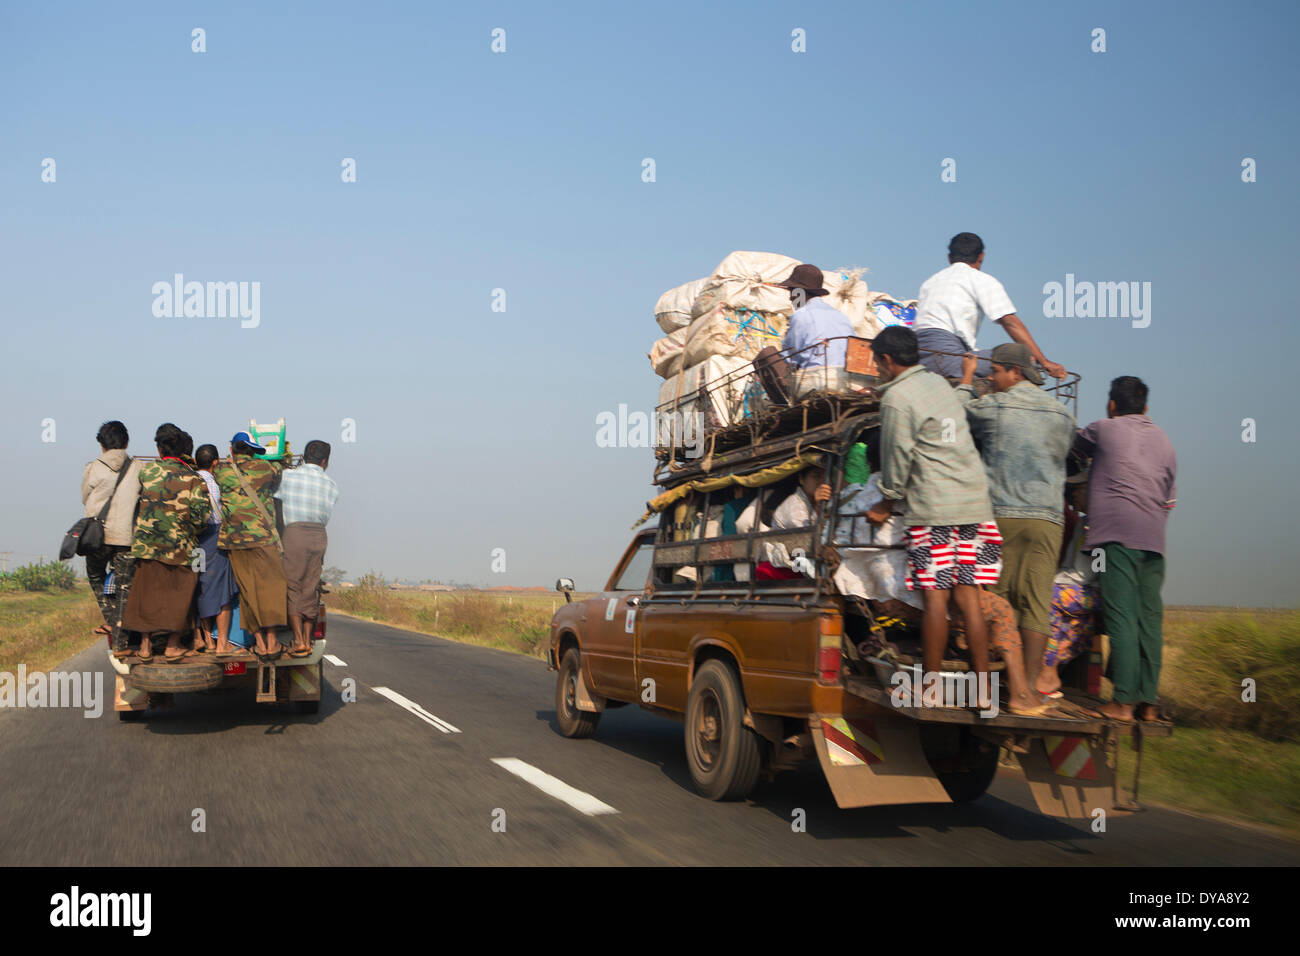 Transport local, Mon, Myanmar, Birmanie, Asie, dangereux, les gens, la circulation, les camions surchargés, Photo Stock